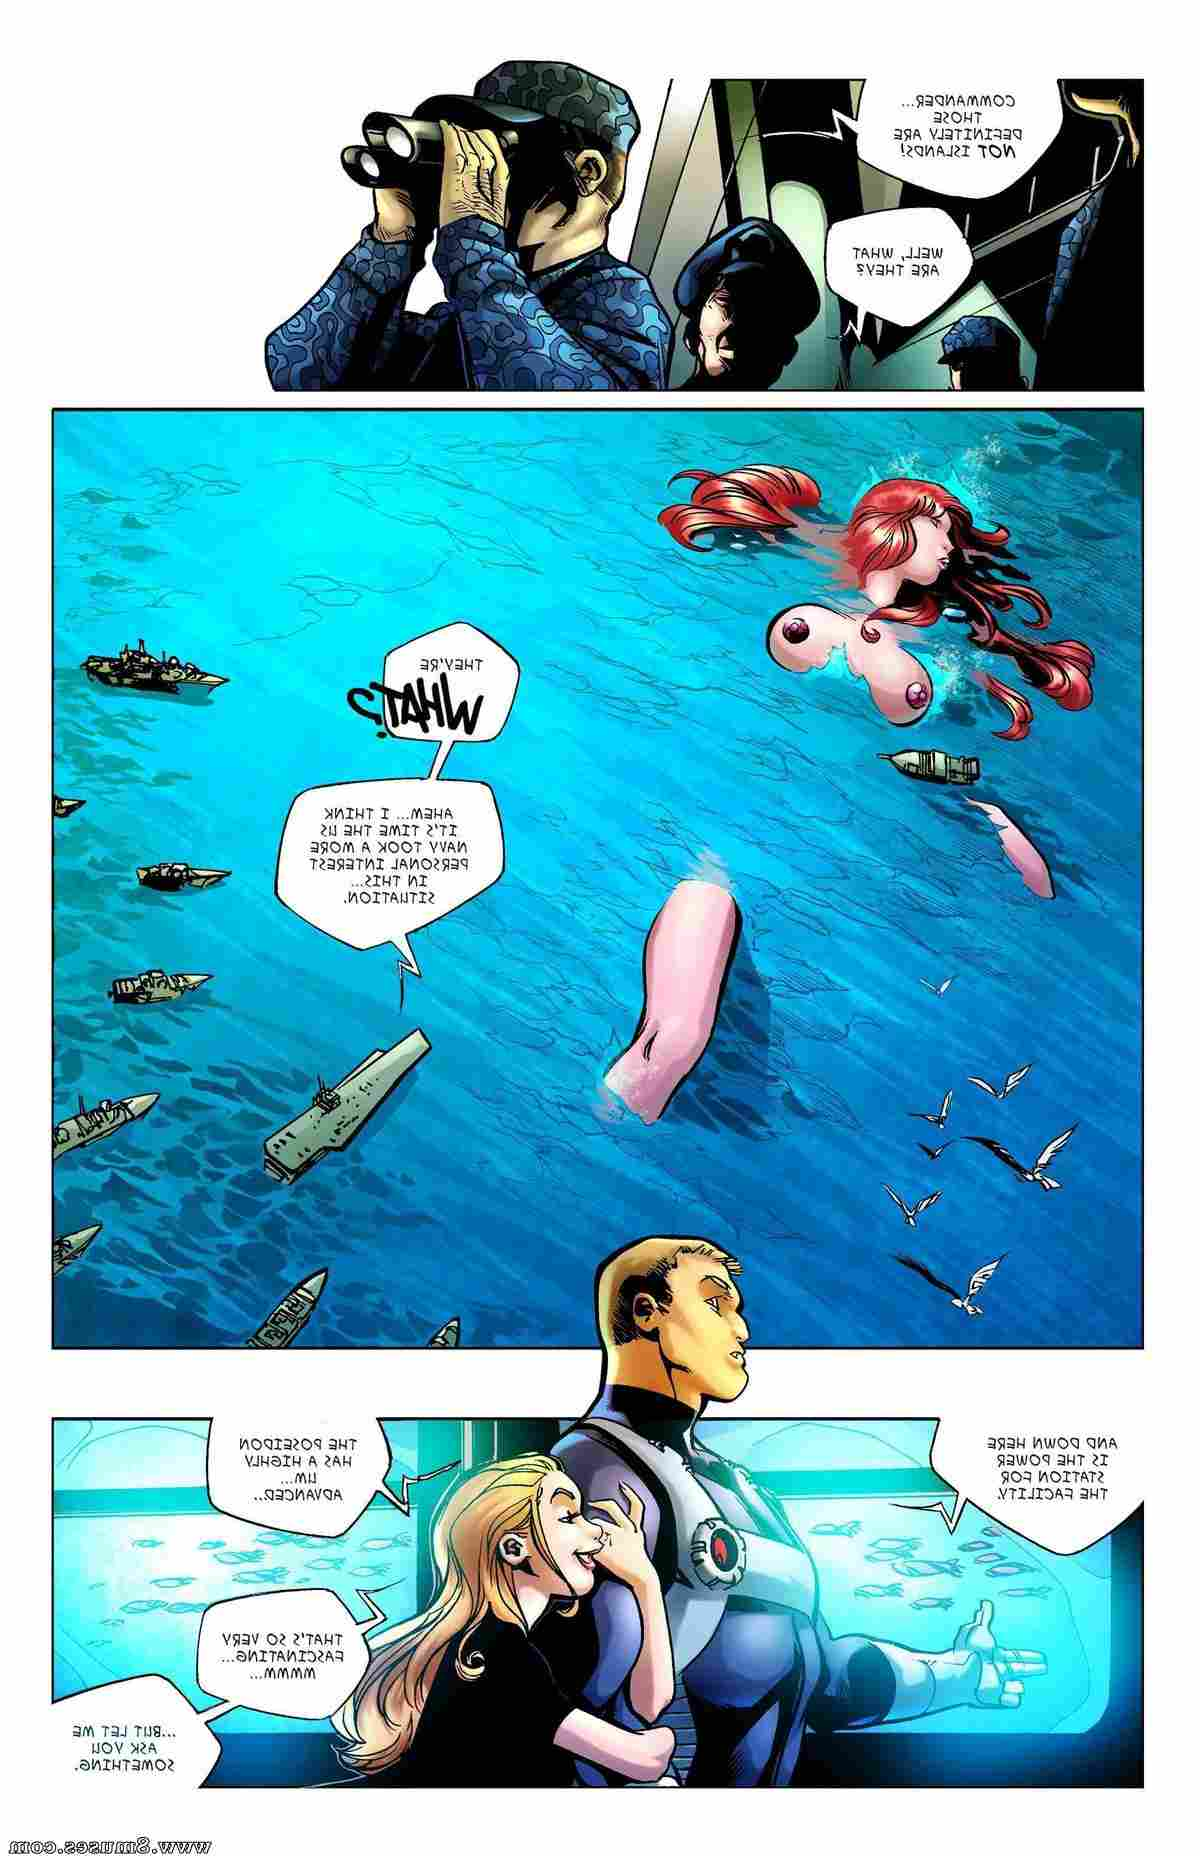 Giantess-Club-Comics/Bubbling-Up-from-the-Abyss Bubbling_Up_from_the_Abyss__8muses_-_Sex_and_Porn_Comics_39.jpg